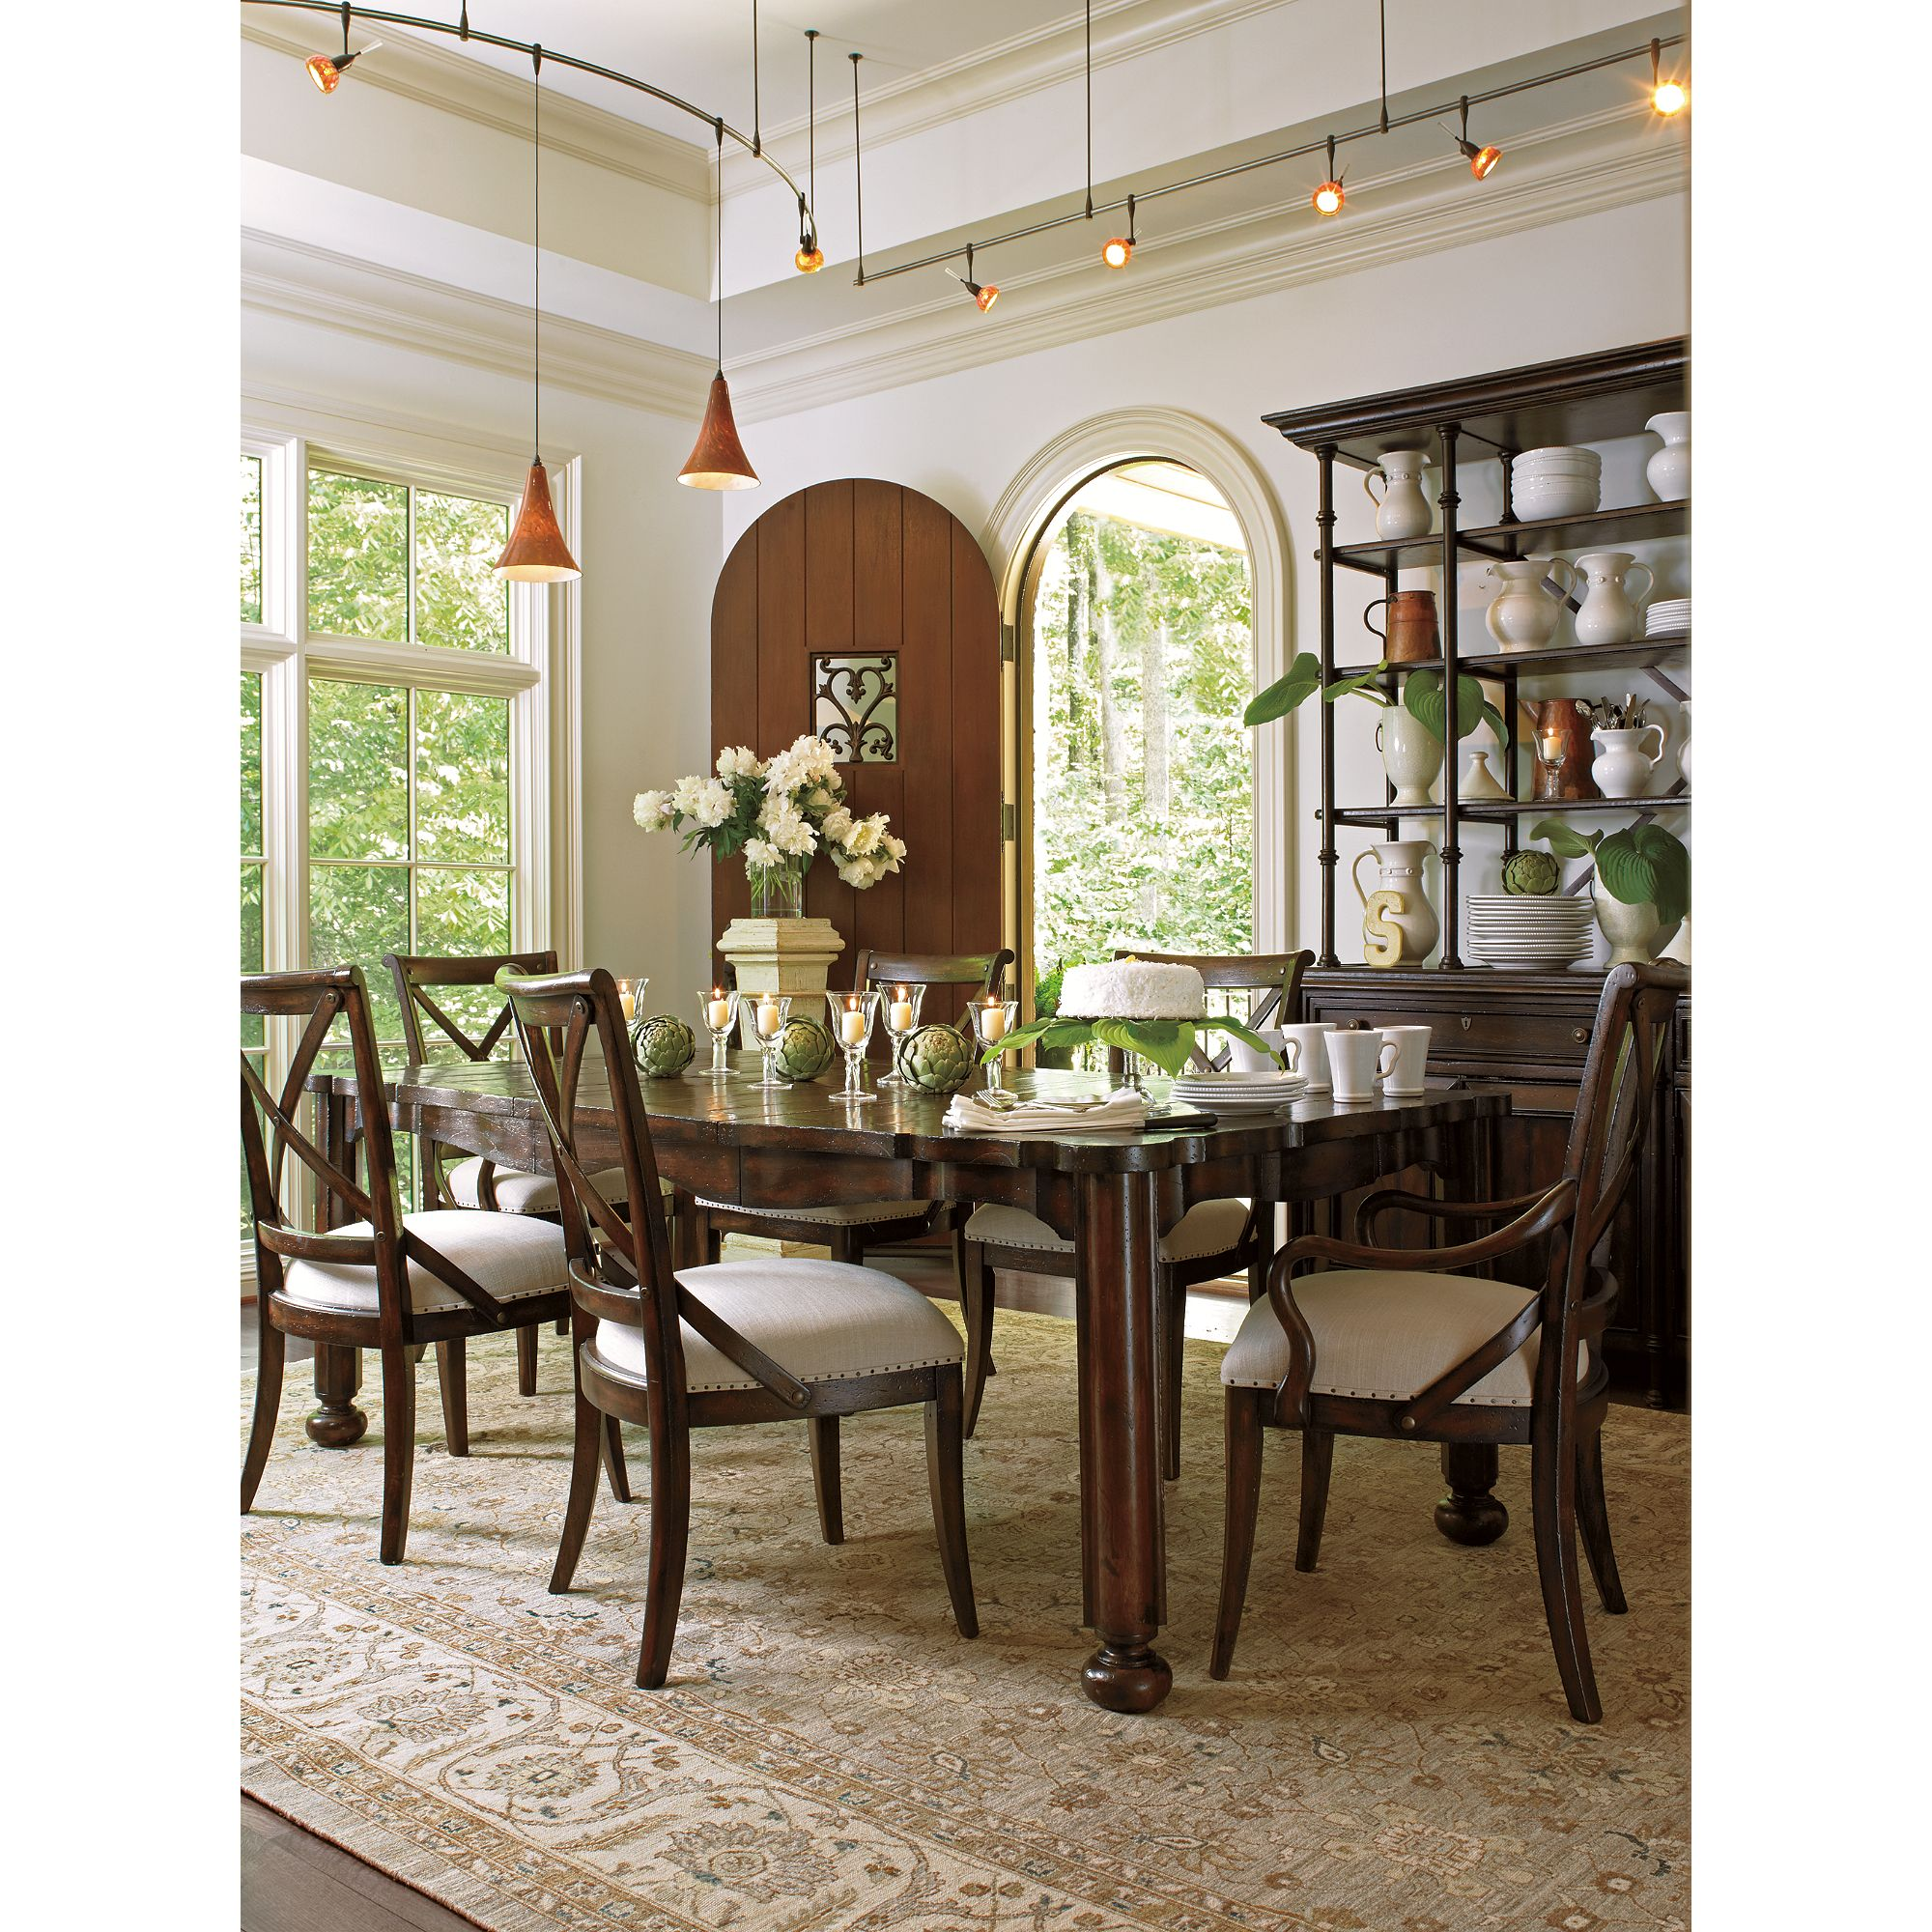 Nice Good At Home Furniture Utah 66 For Small Decoration Ideas With Dining AreaDining